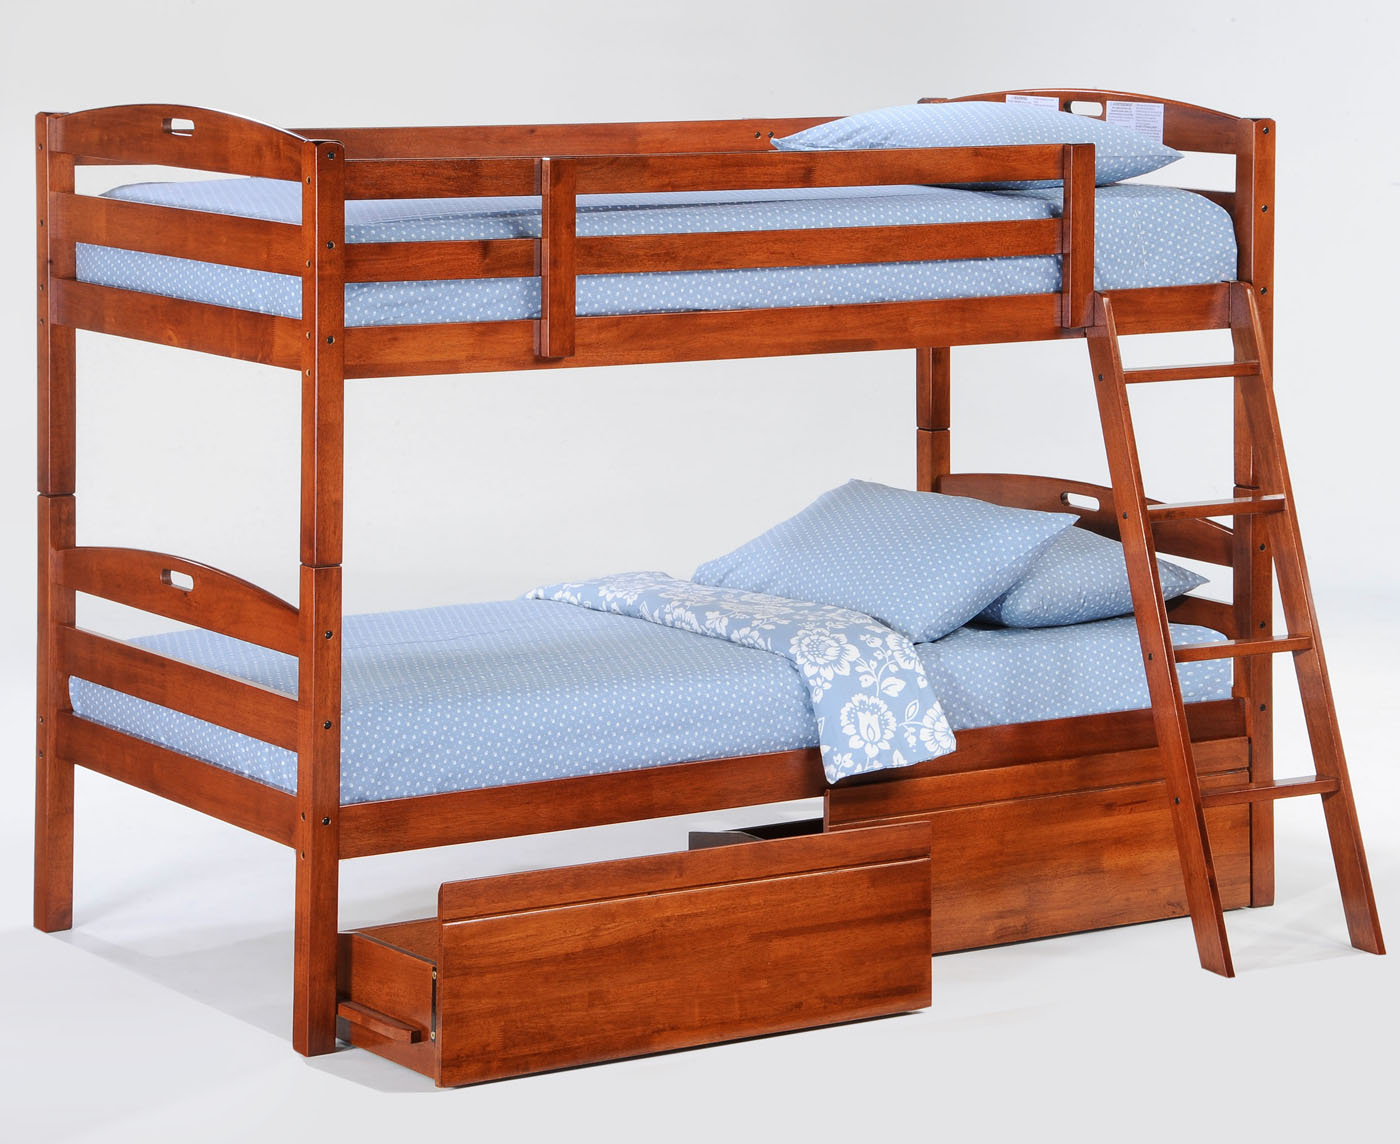 Bunk Beds With Extra High Rails